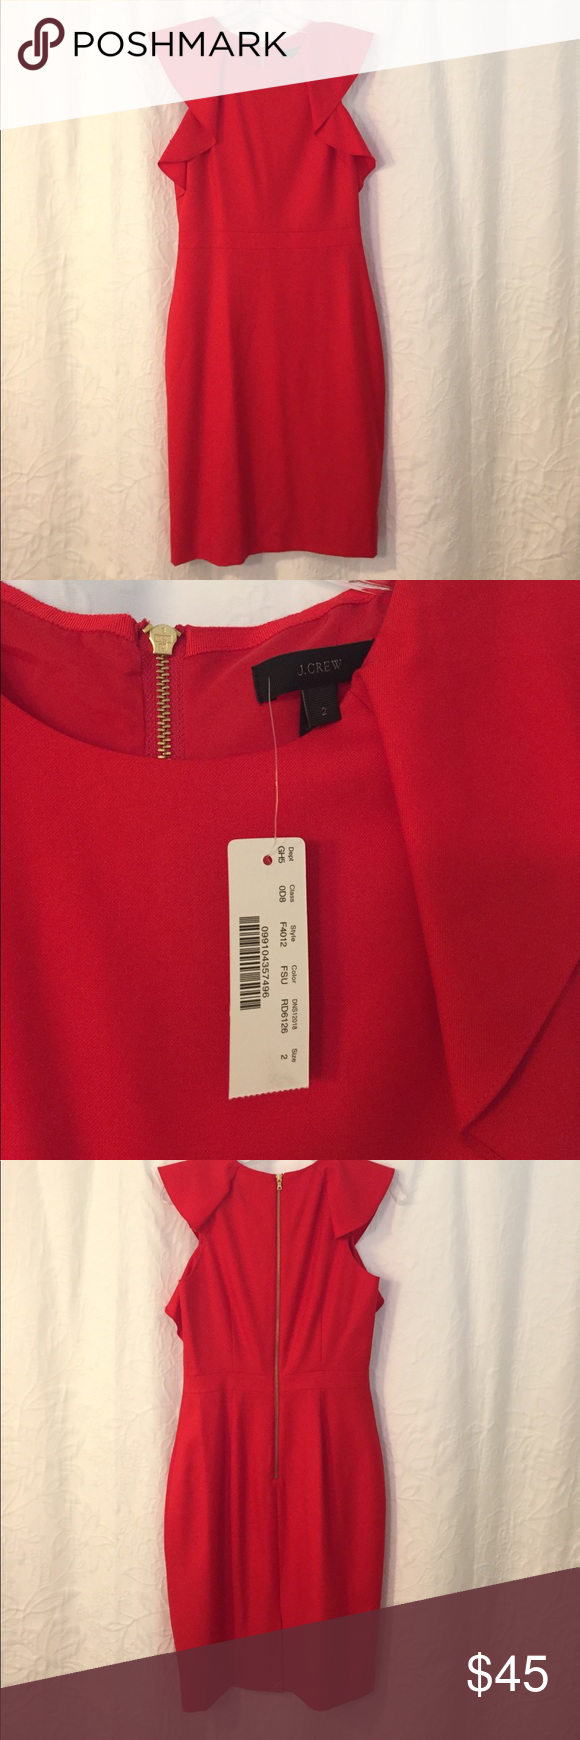 J. Crew Monday Dress Super 120's Wool Red size 2 Beautiful bright red sleeveless flutter sleeve dress from J Crew. Size 2, Brand New With Tags! Never worn, this is a beautiful dress but not my color. J. Crew Dresses